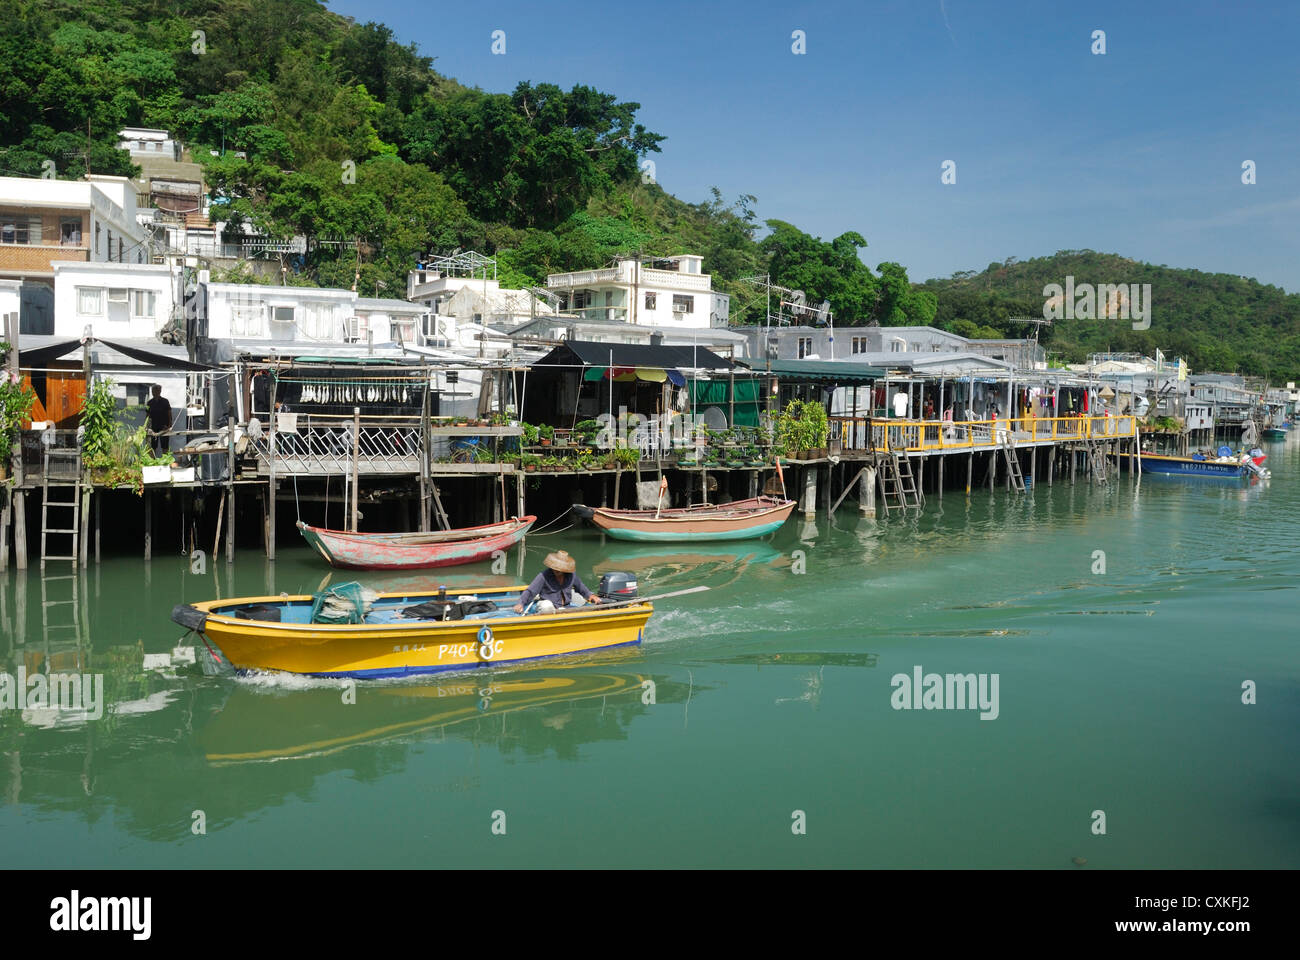 Houses on stilts line the waterway of the small traditional fishing village of Tai O, located on Lantau Island, - Stock Image